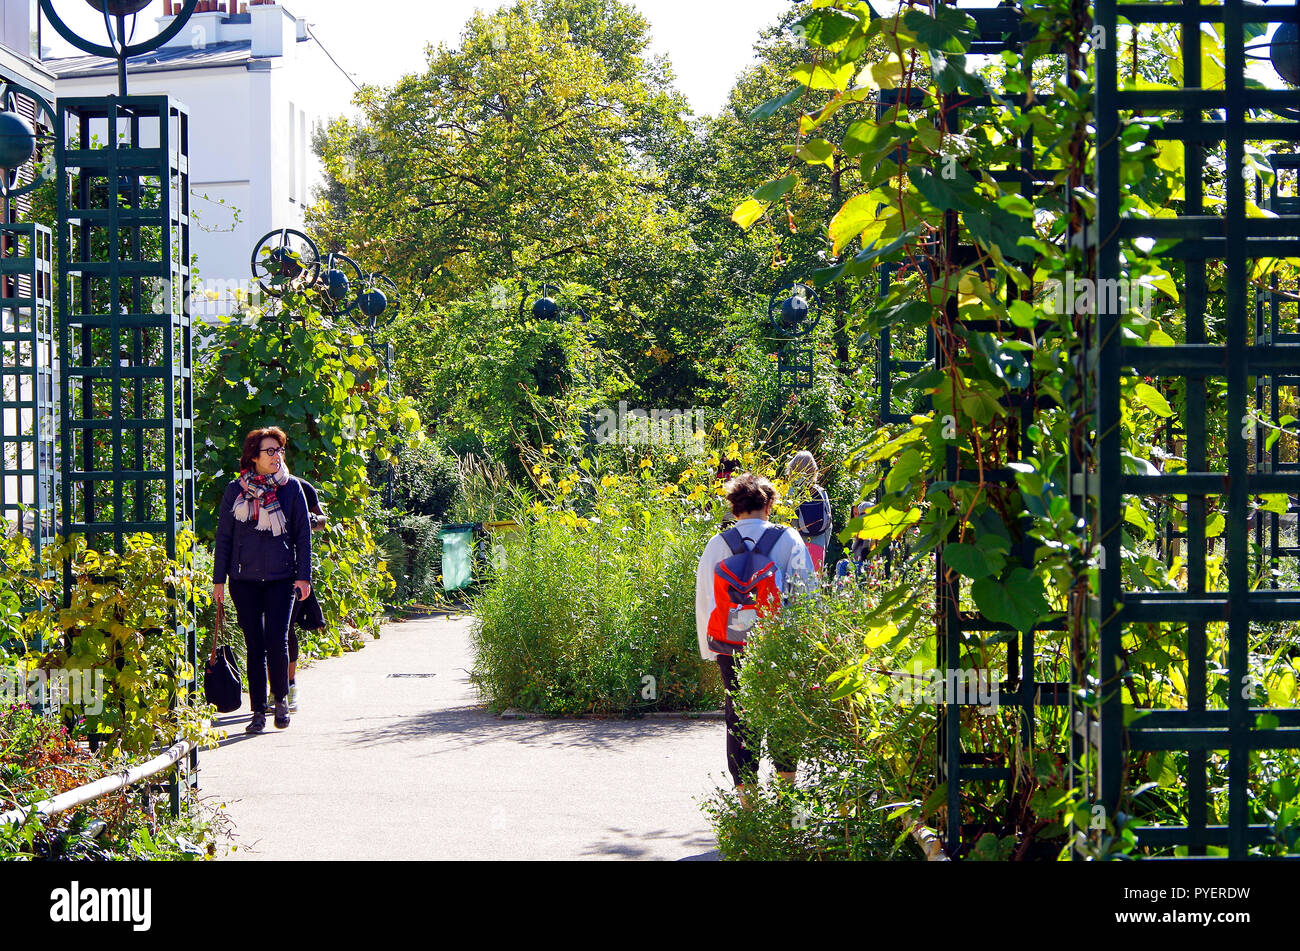 Paris France, Promenade Plantée, linear garden on a disused railway viaduct, with dramatic planting and views and freedom from traffic for long walks Stock Photo